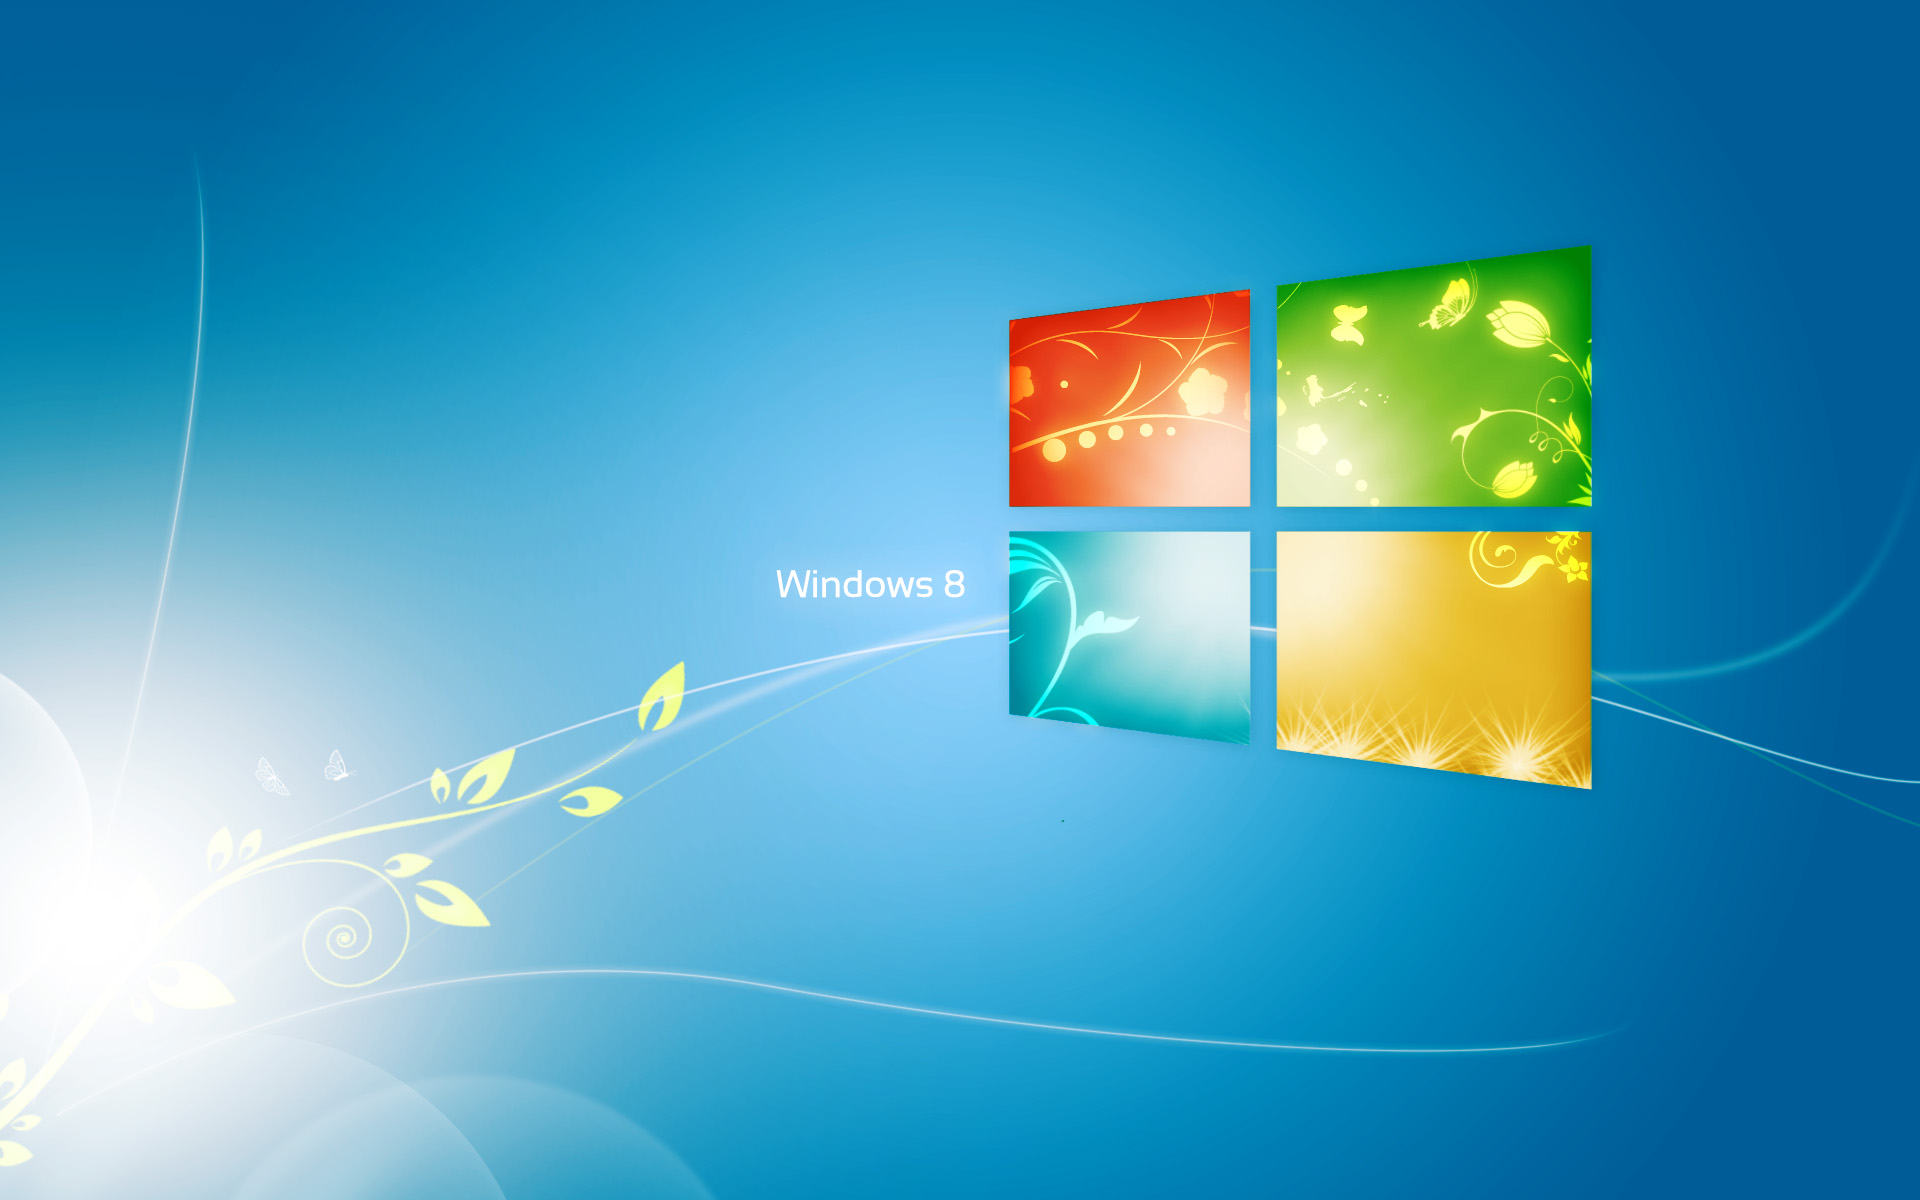 Windows 8 065 Logo